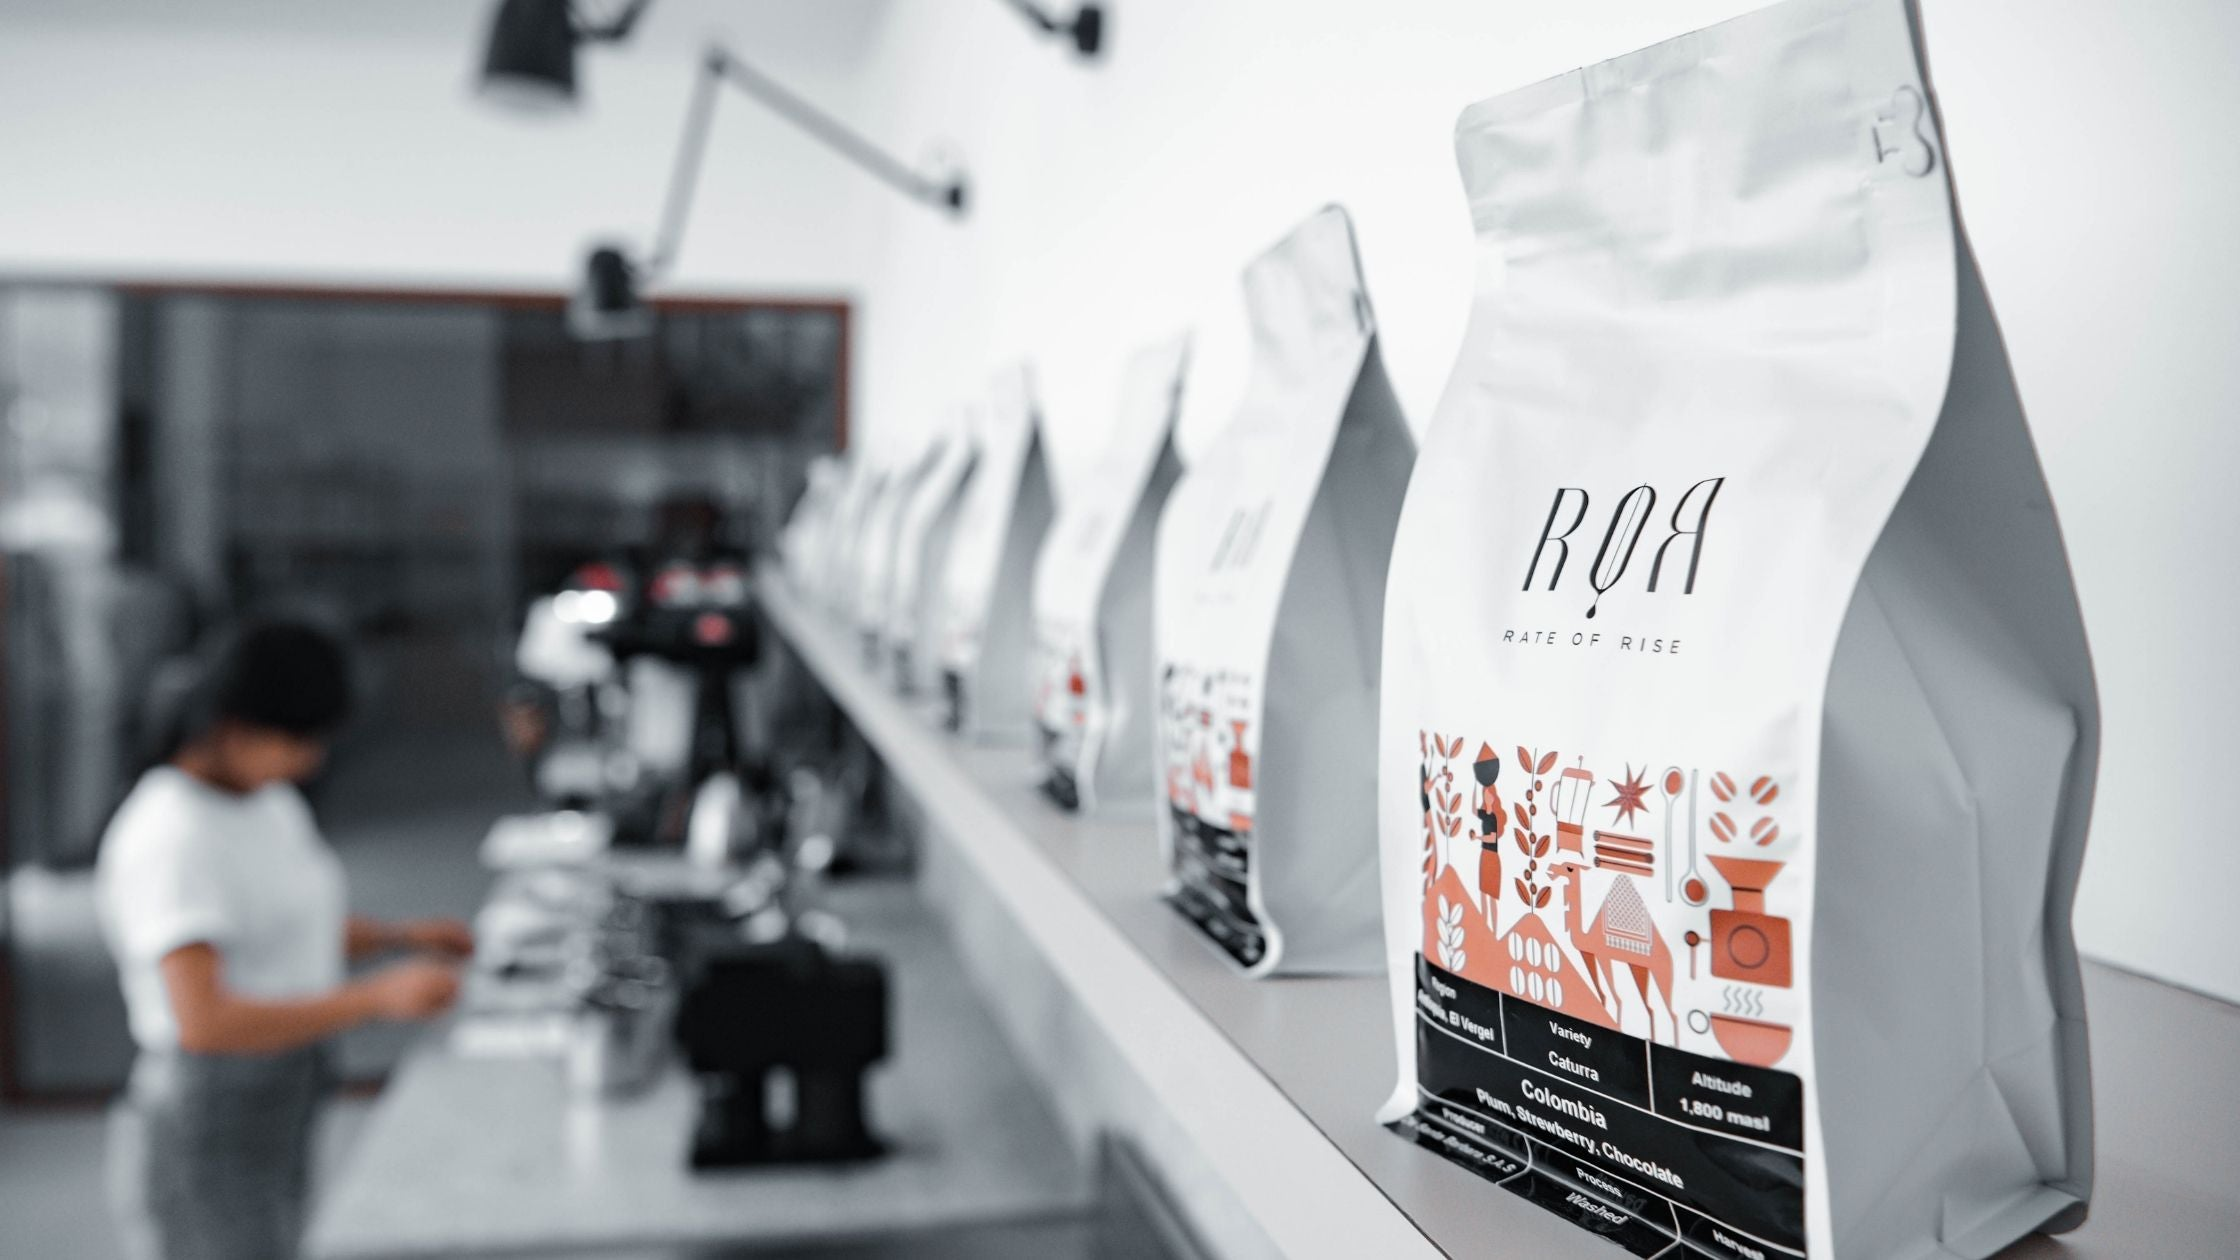 ror coffee roastery specialty coffee beans